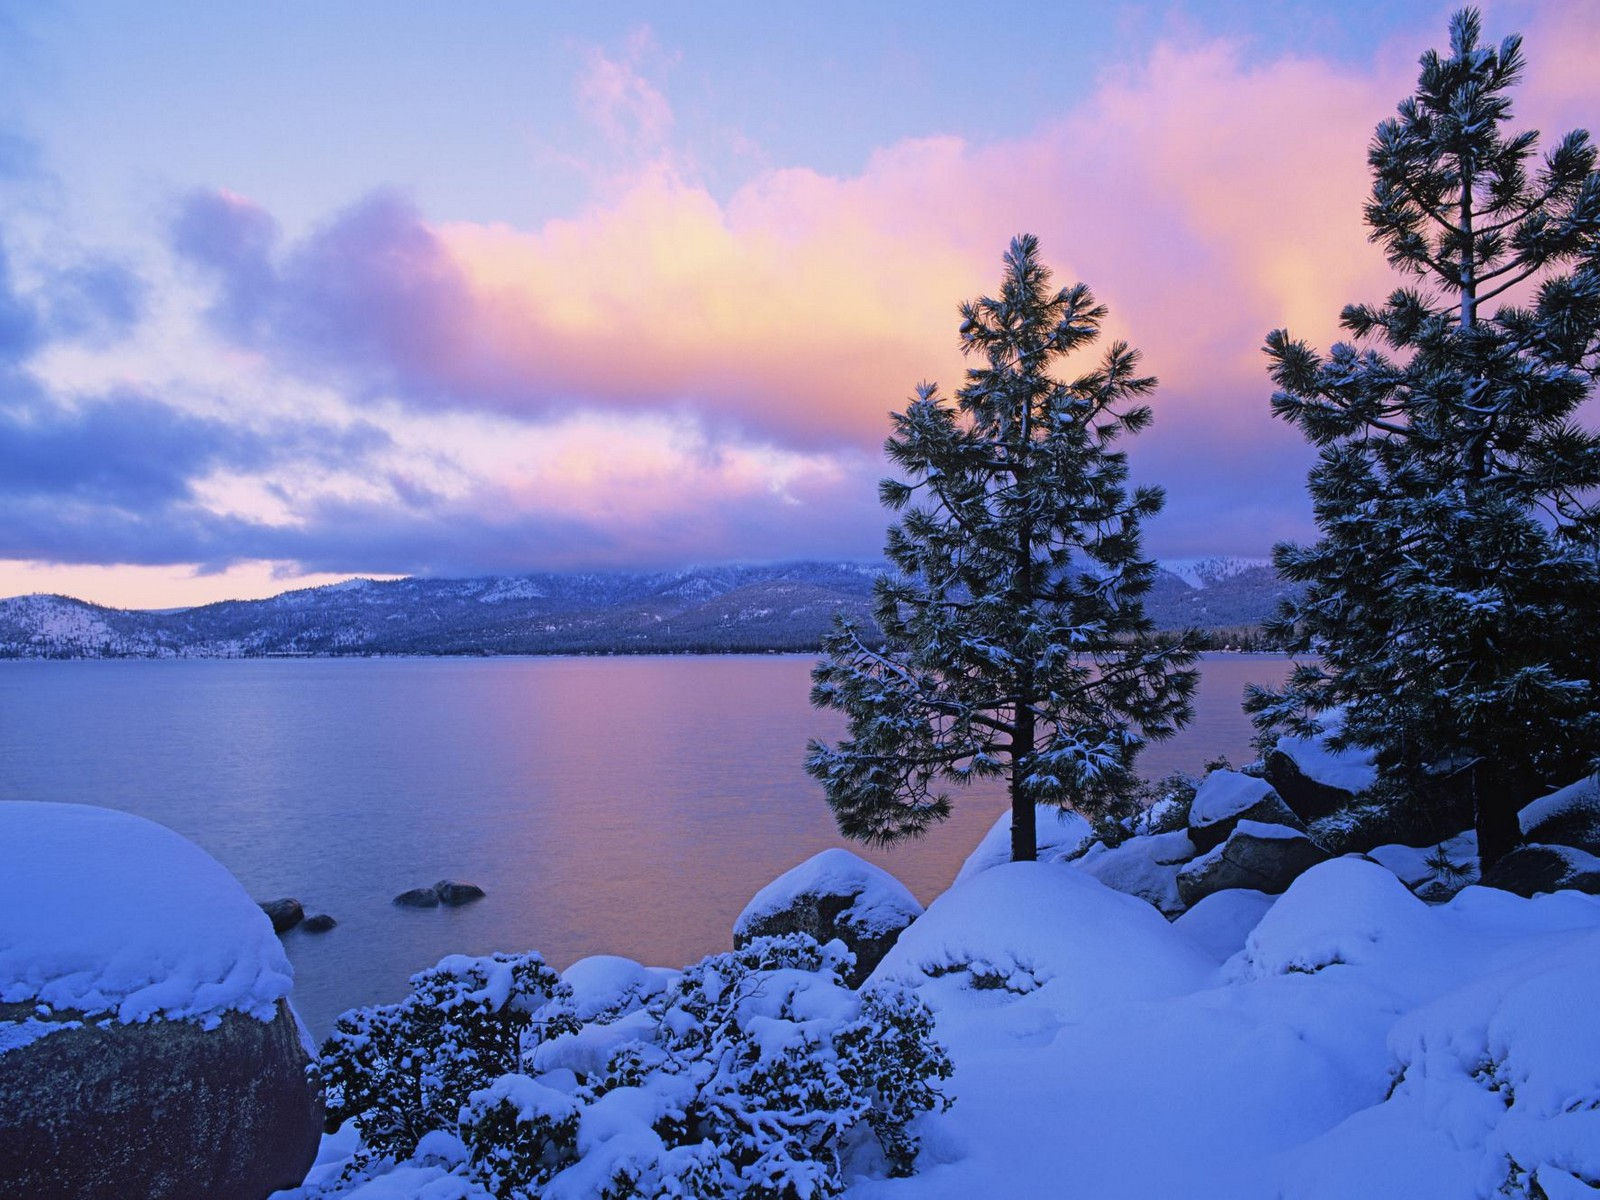 Winter Scenes For Desktop Posted By Ethan Johnson